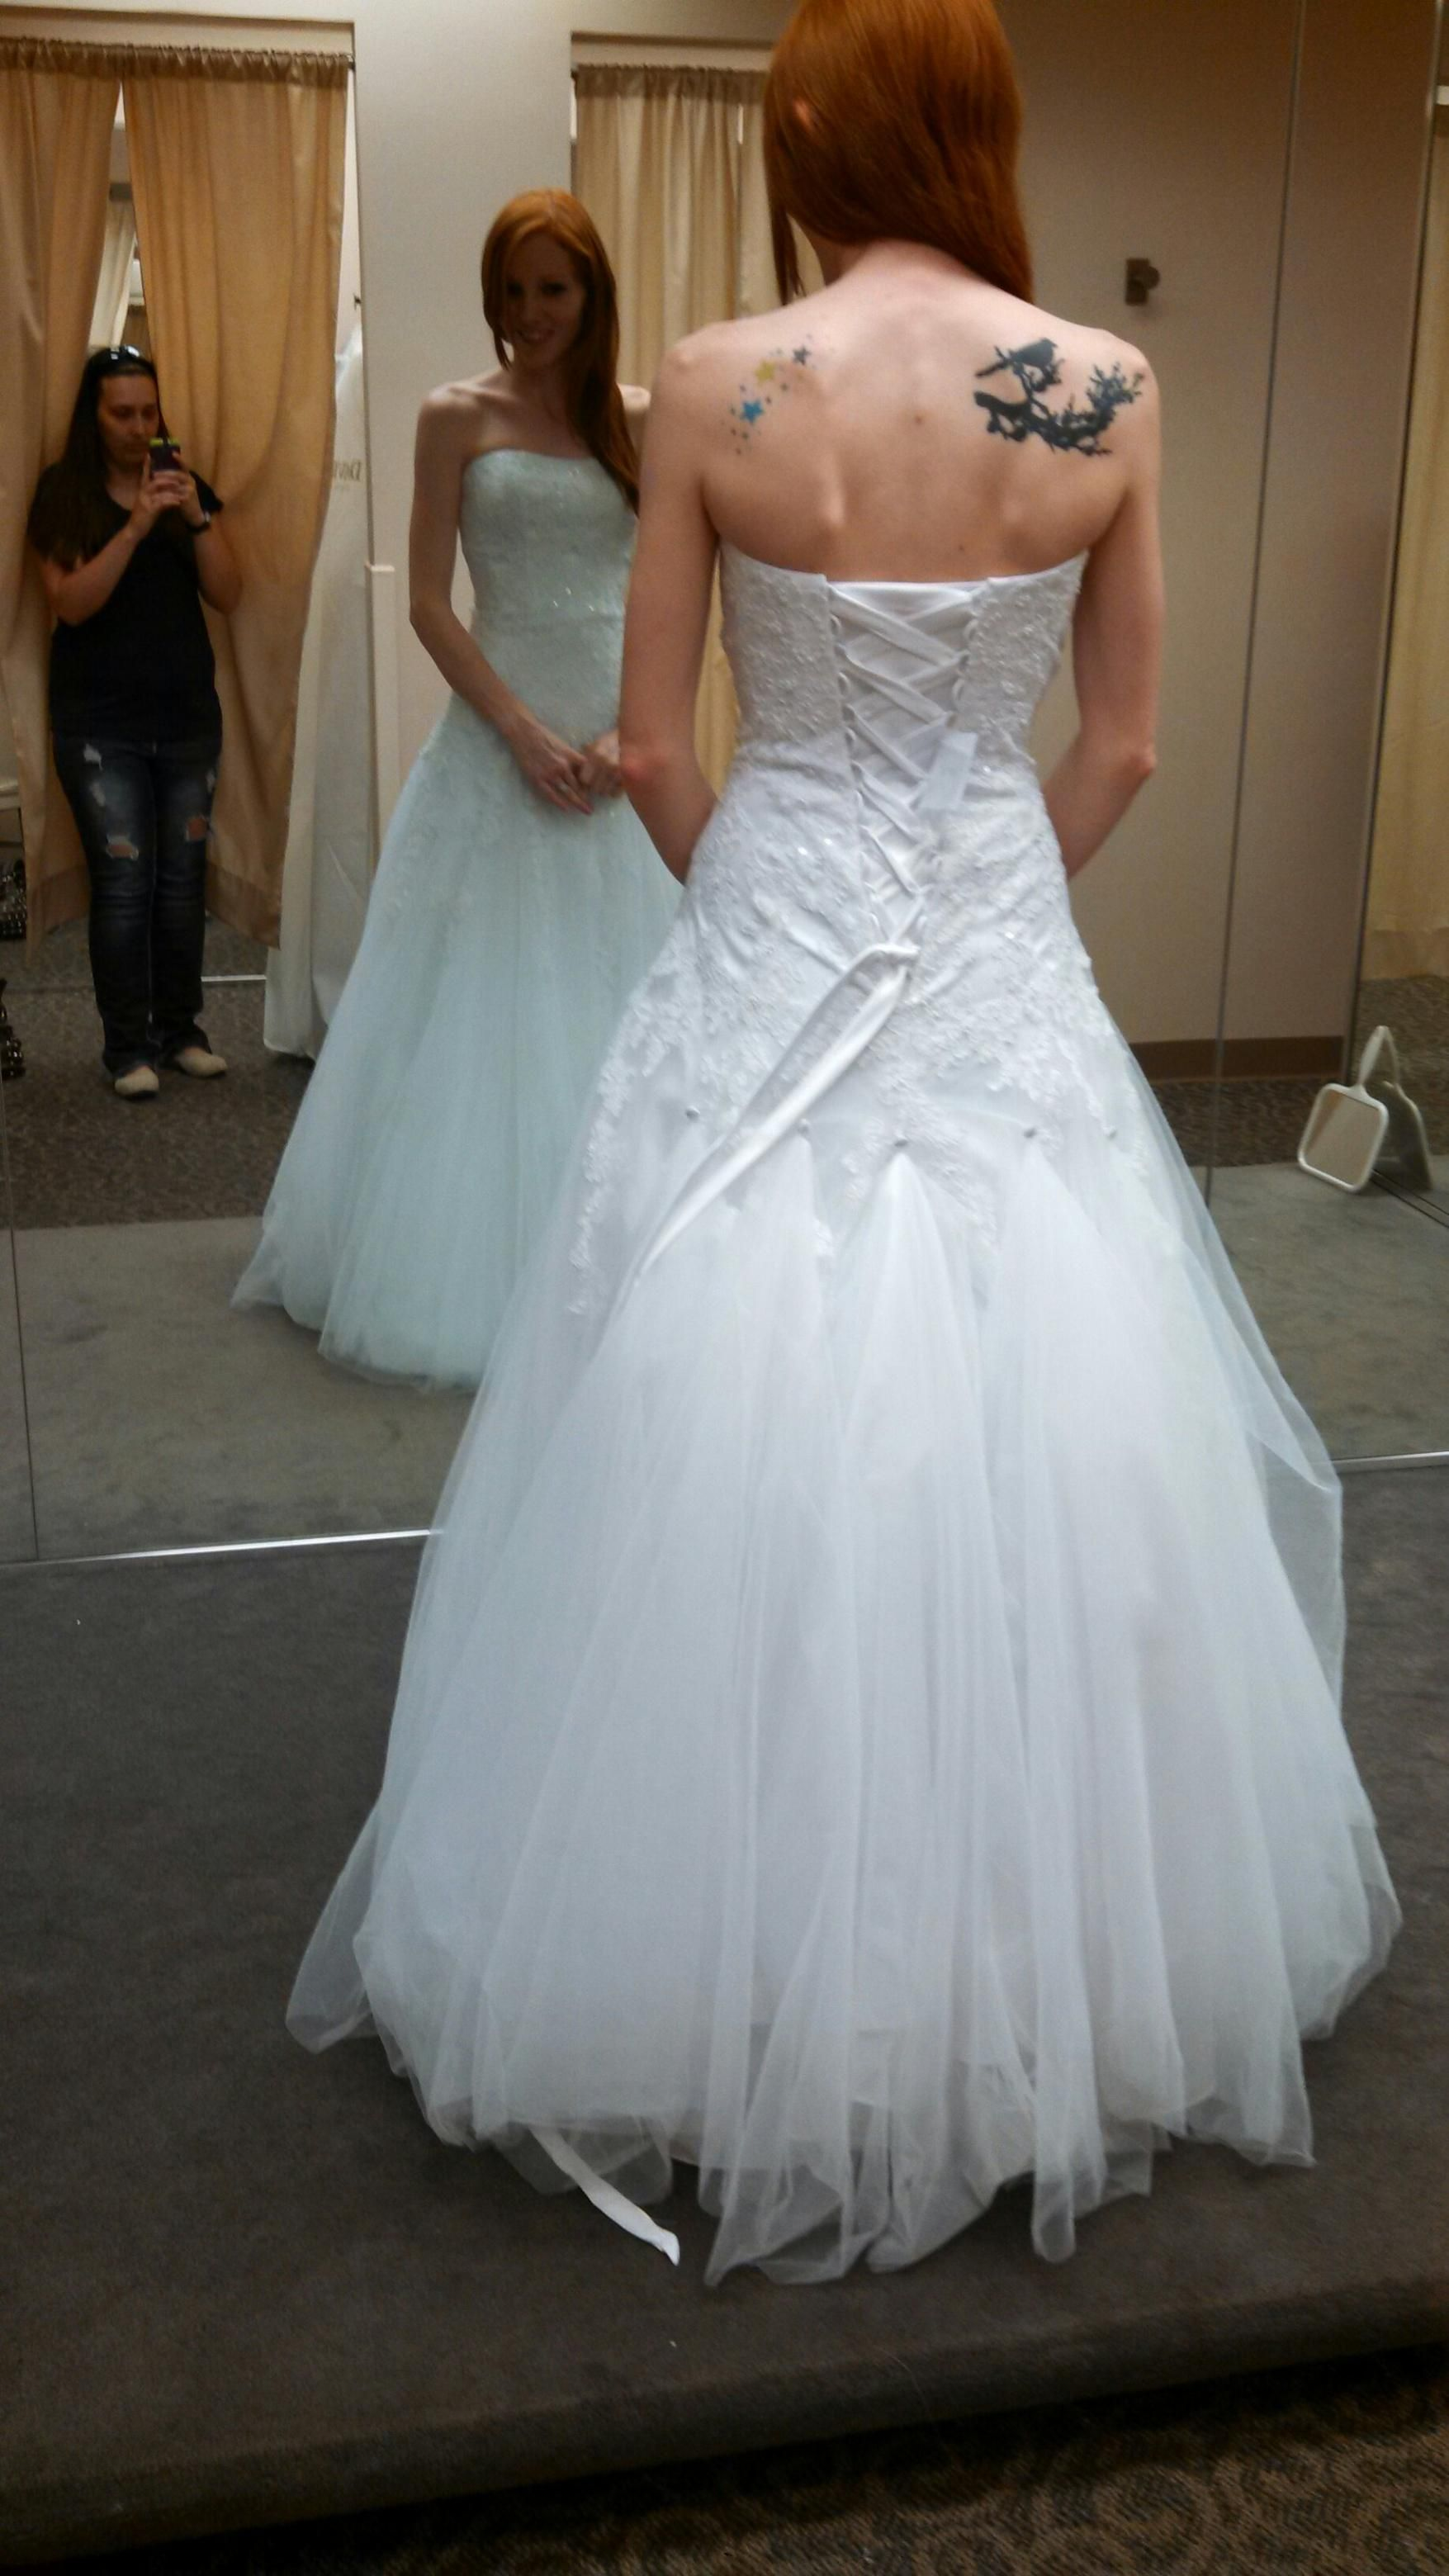 Bustle for tulle wedding dress suggestions? - Weddingbee | Dresses ...